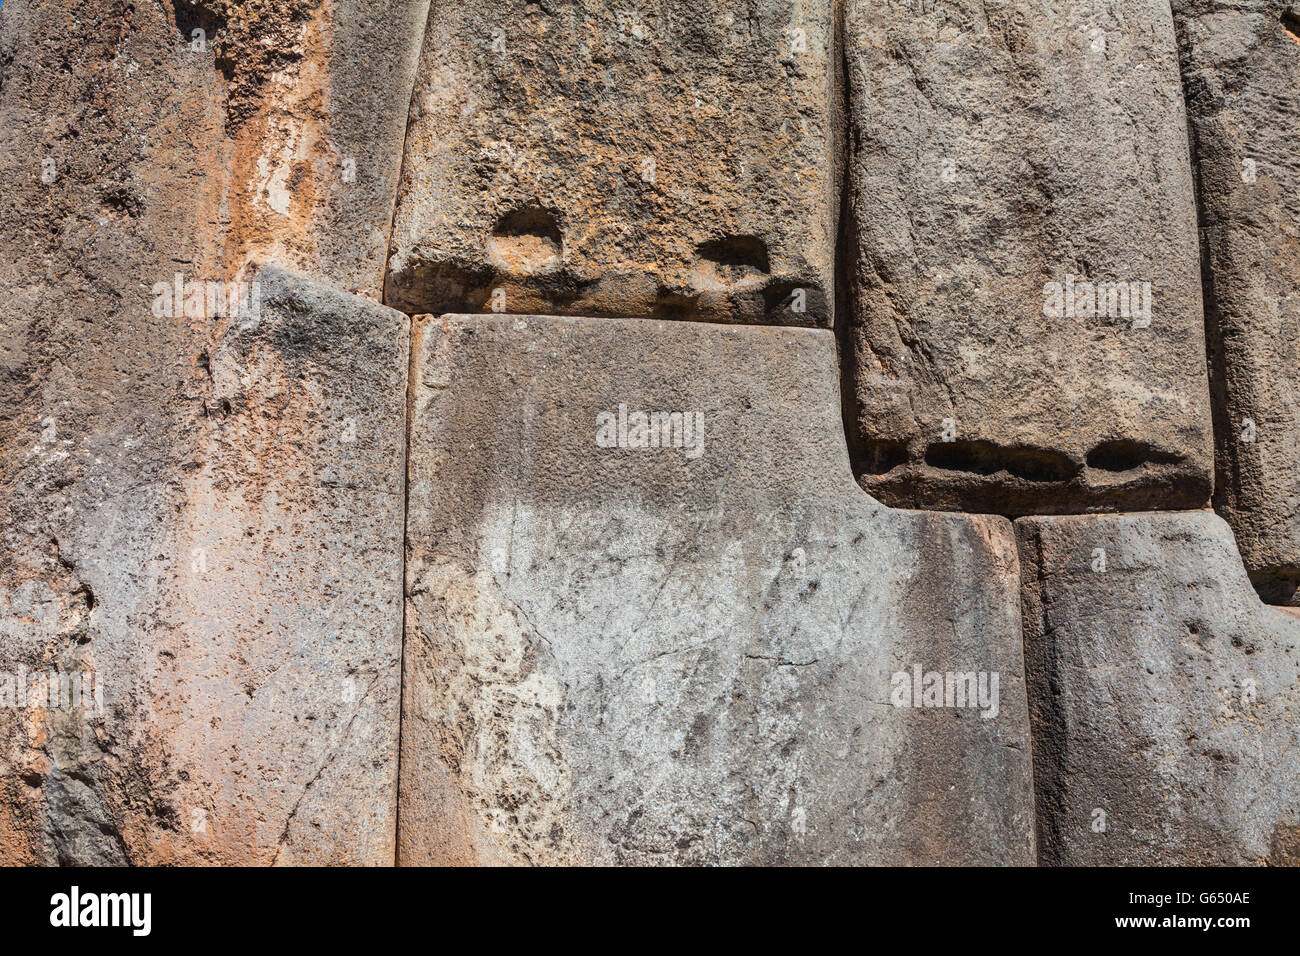 Abstract image of the massive stone walls of Sacsayhuaman Incan fortress in Cusco, Peru - Stock Image